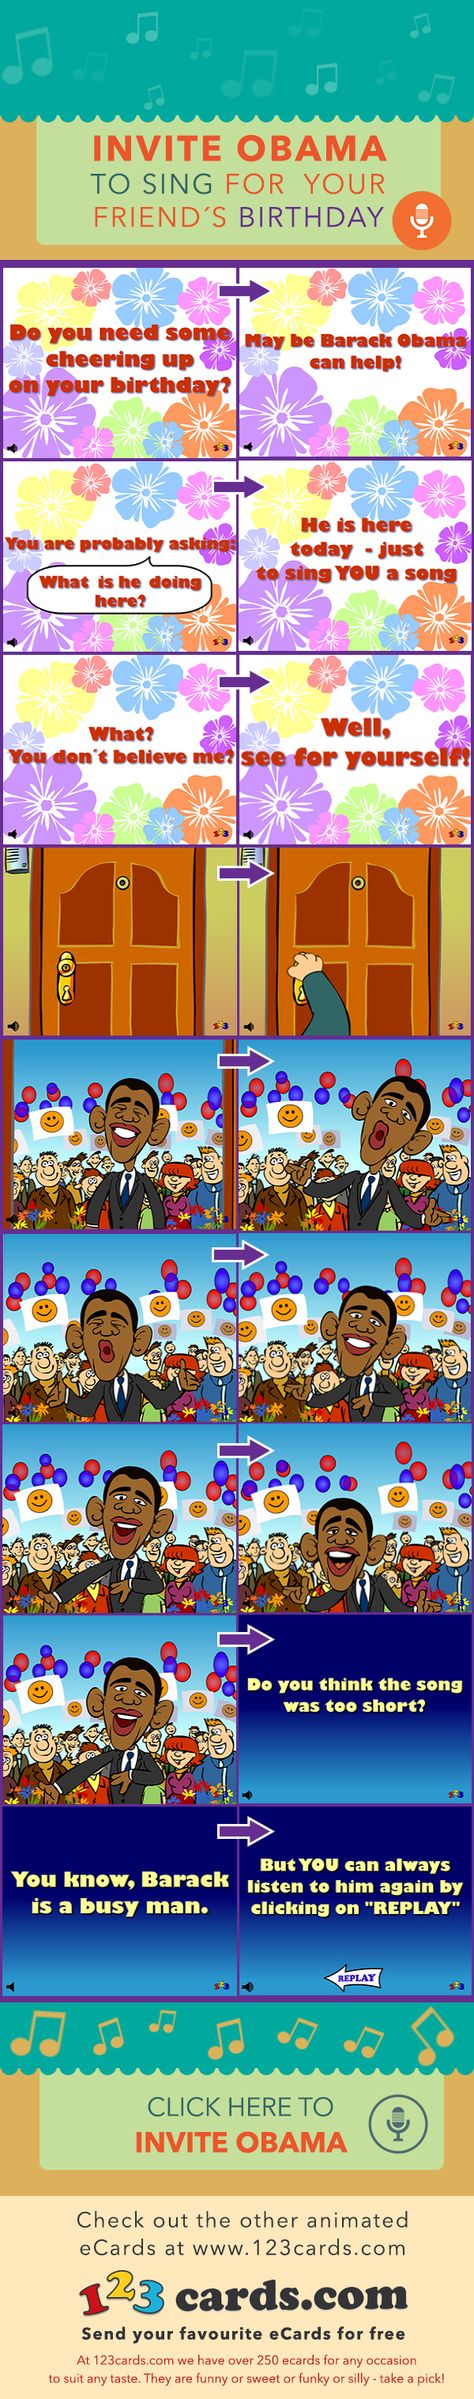 Obama Funny Birthday Wishes Cartoon Get Well Soon Obama E Cards